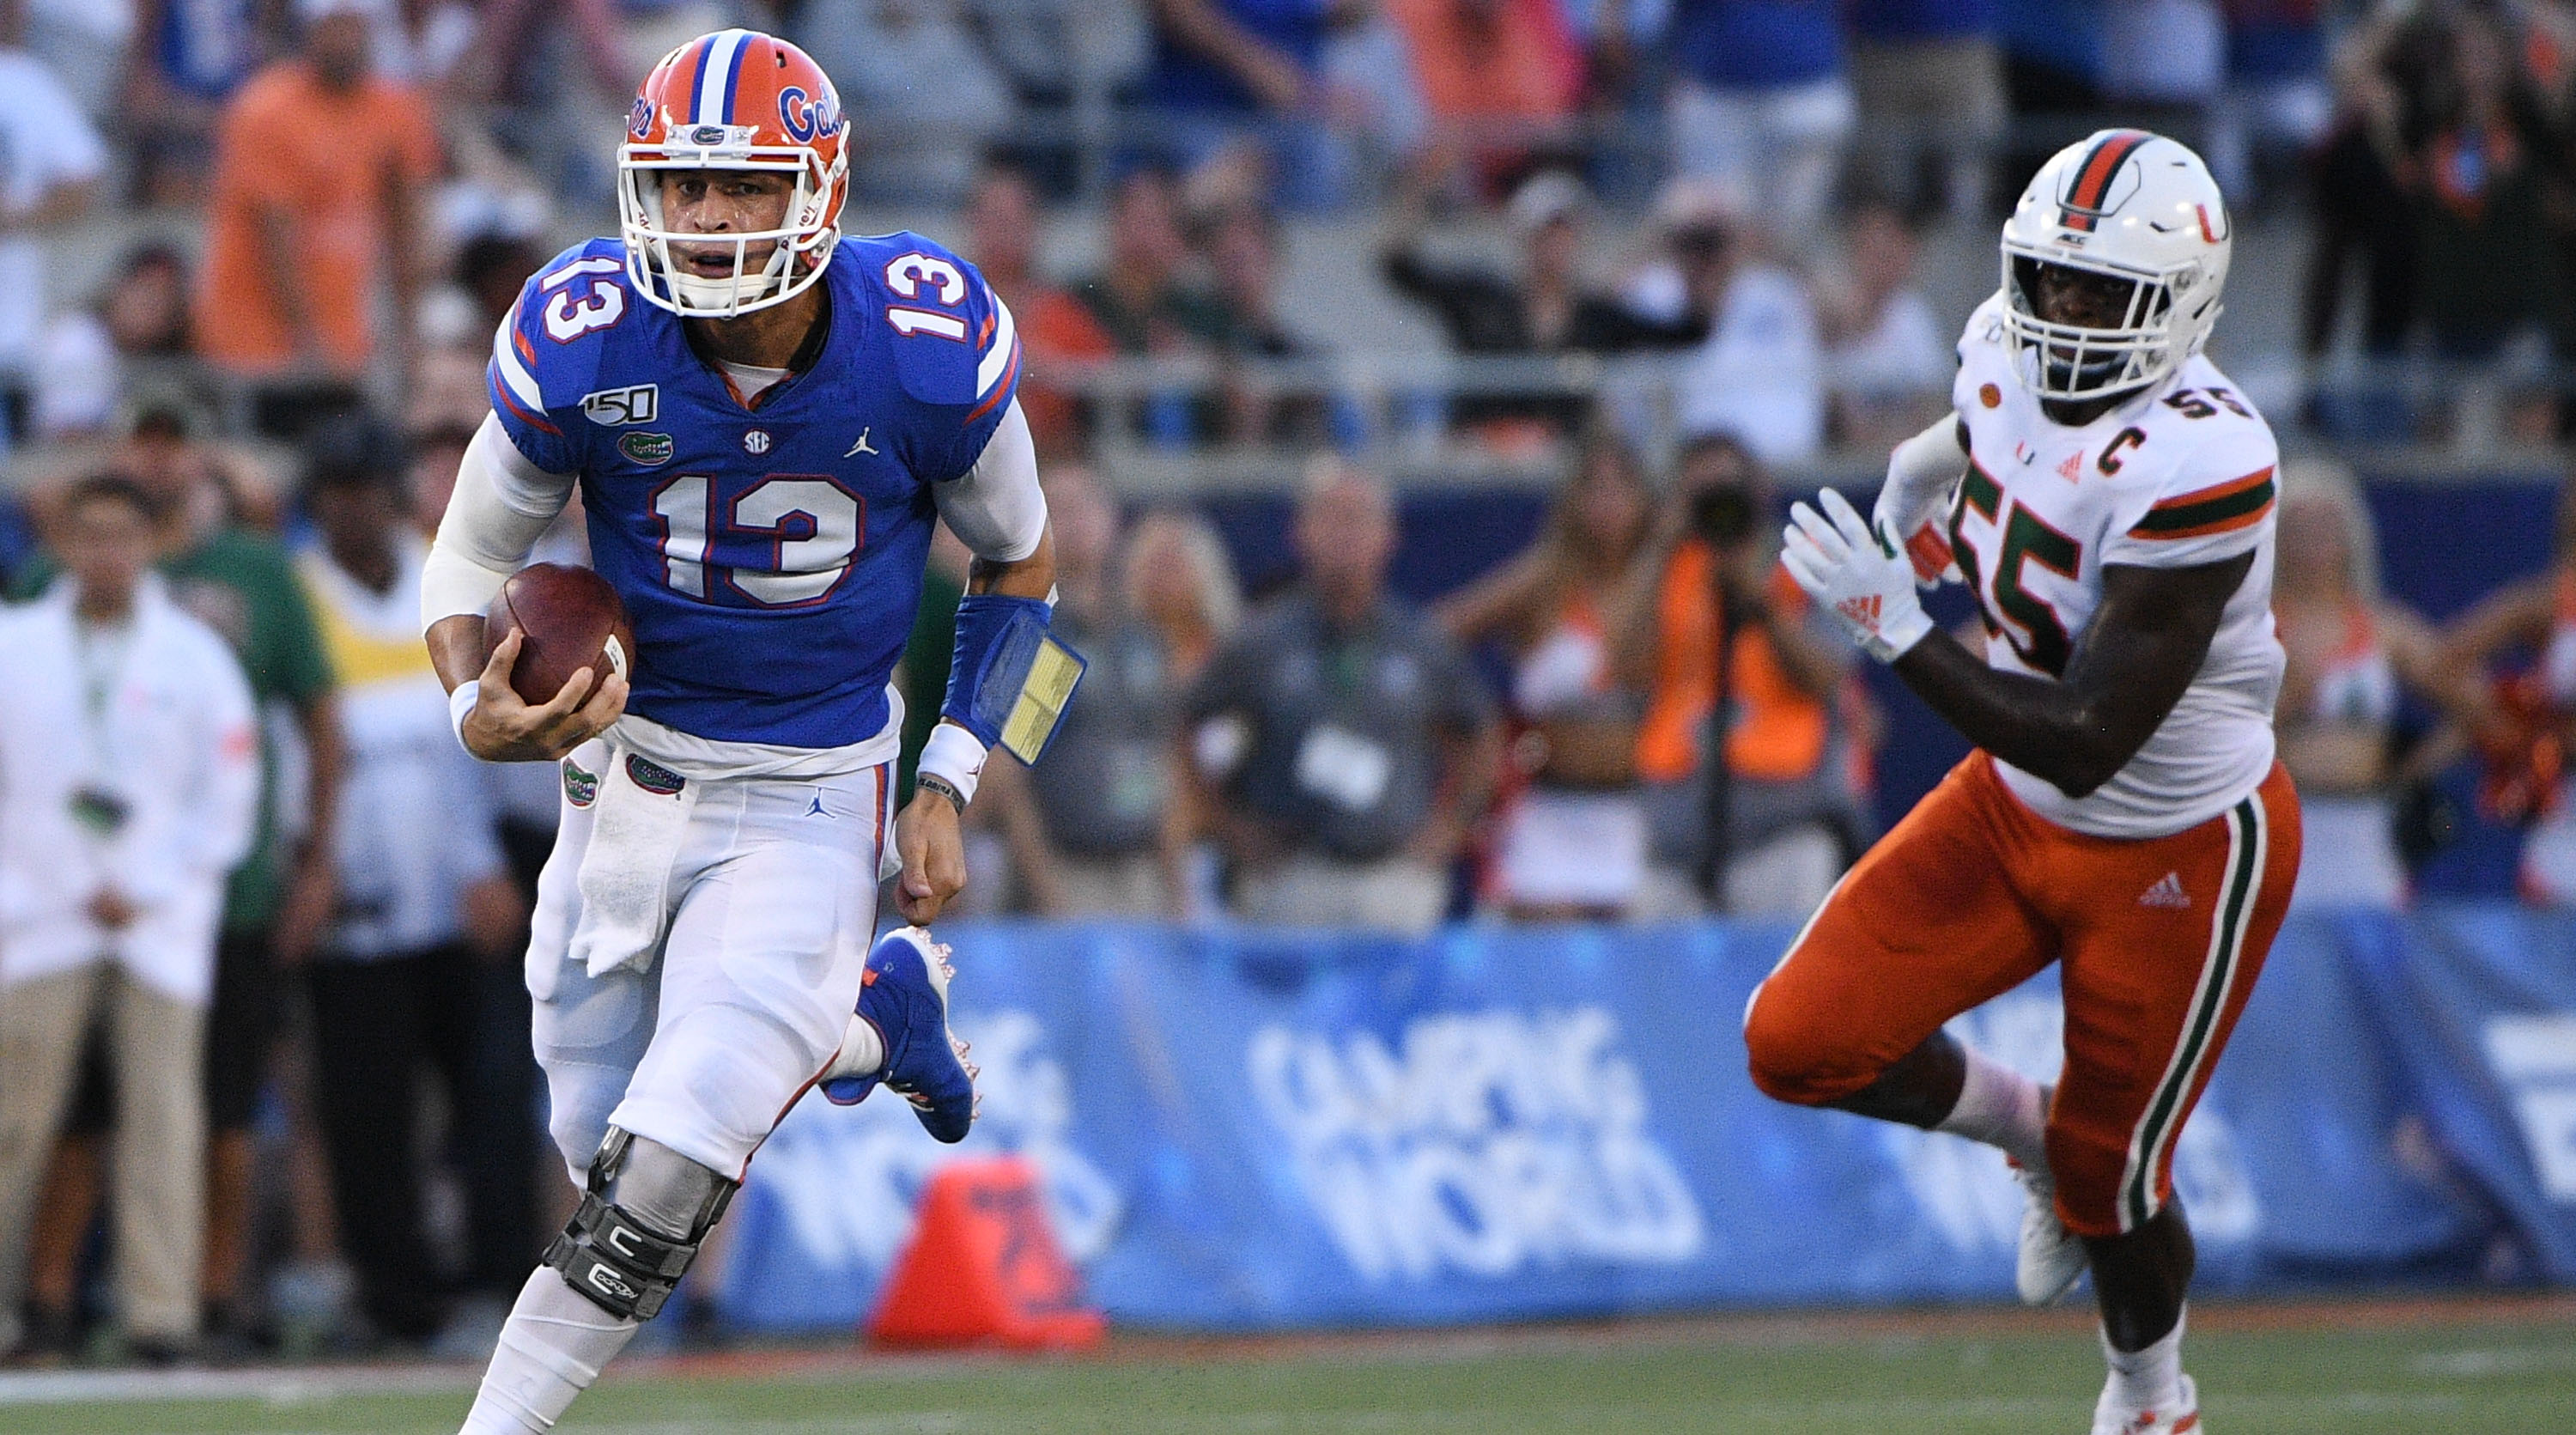 No. 8 Florida Edges Miami in Opener That Showcased the Madness of College Football